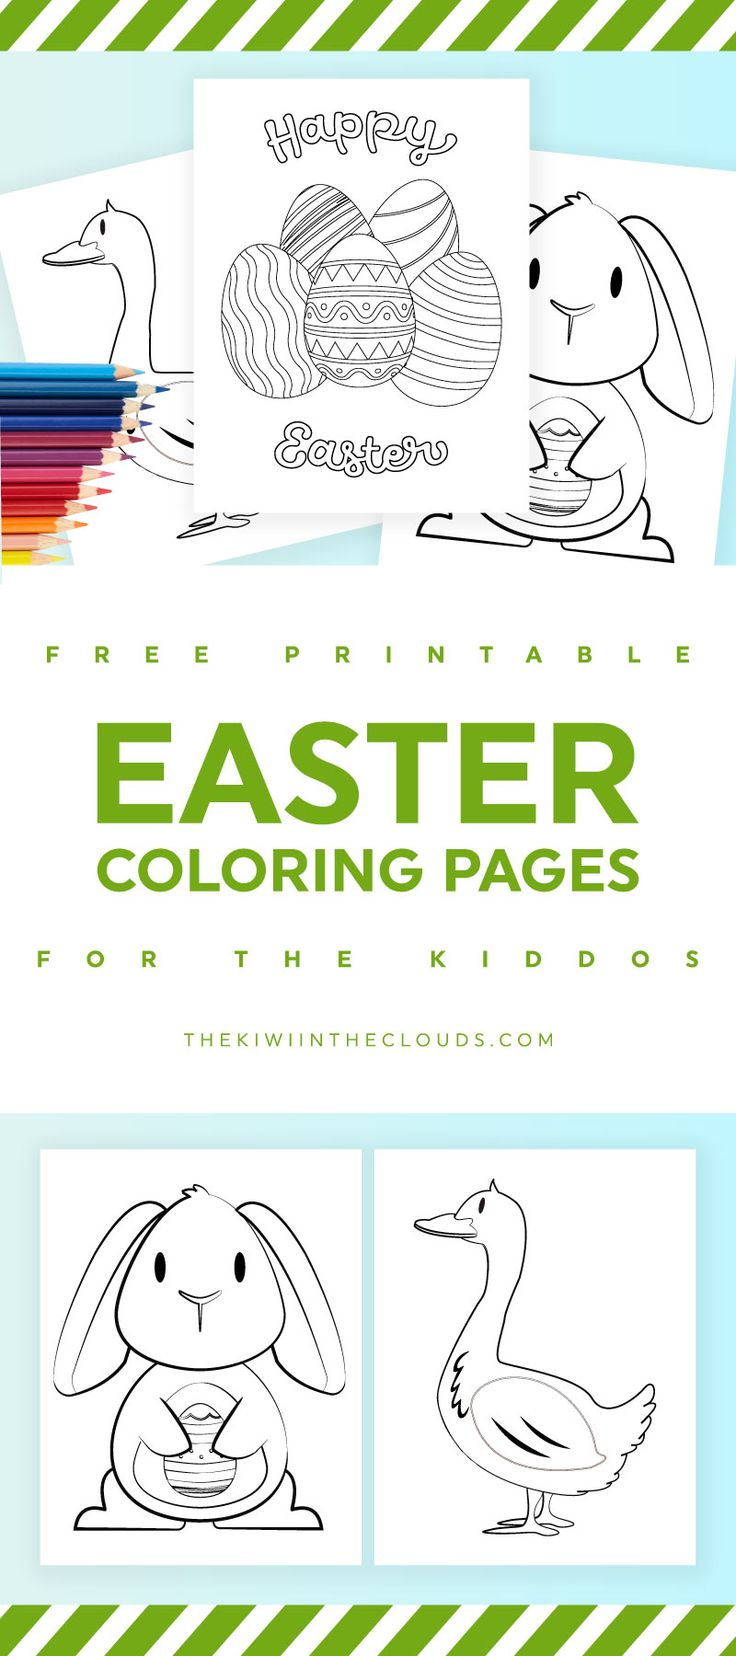 196 Best Coloring Pages For Kids Images On Pinterest